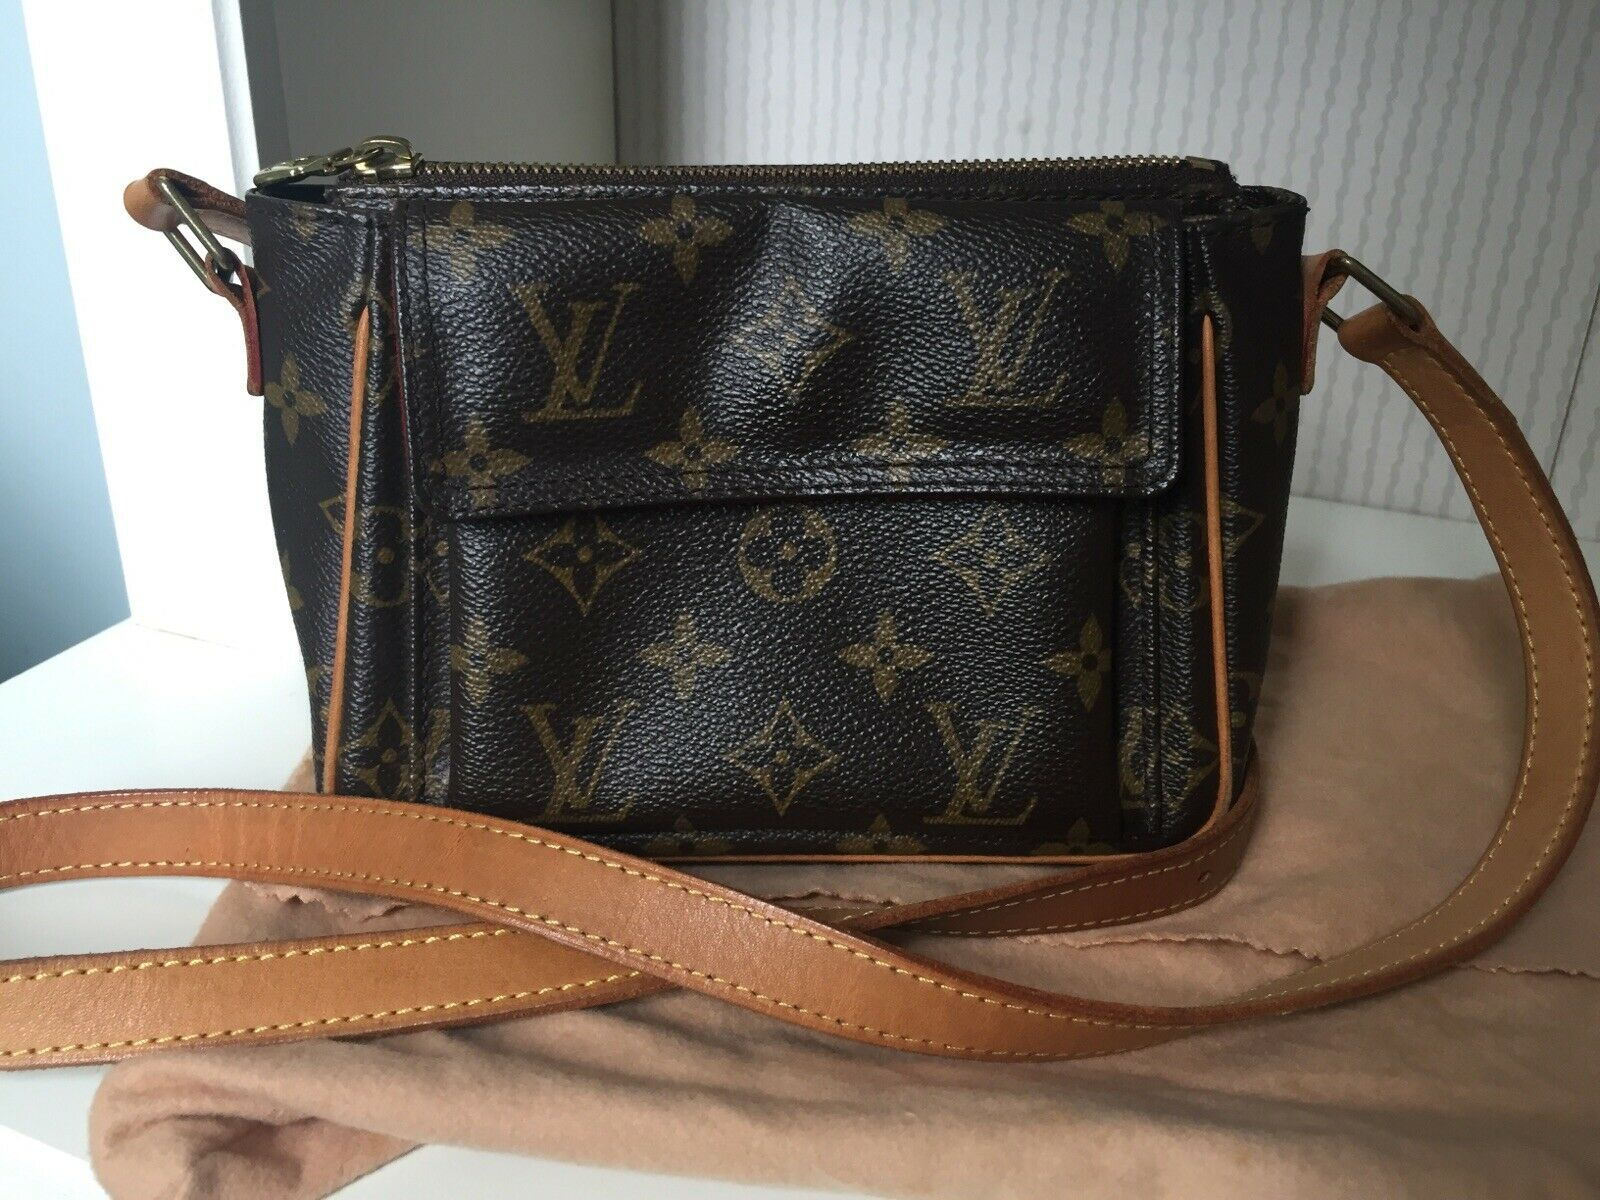 Authentic Louis Vuitton Monogram Viva Cite PM Schultertasche - 715.08,Kaufpreis 715,08,datum 01.07.2020 22:12:38,Website rebelle.com